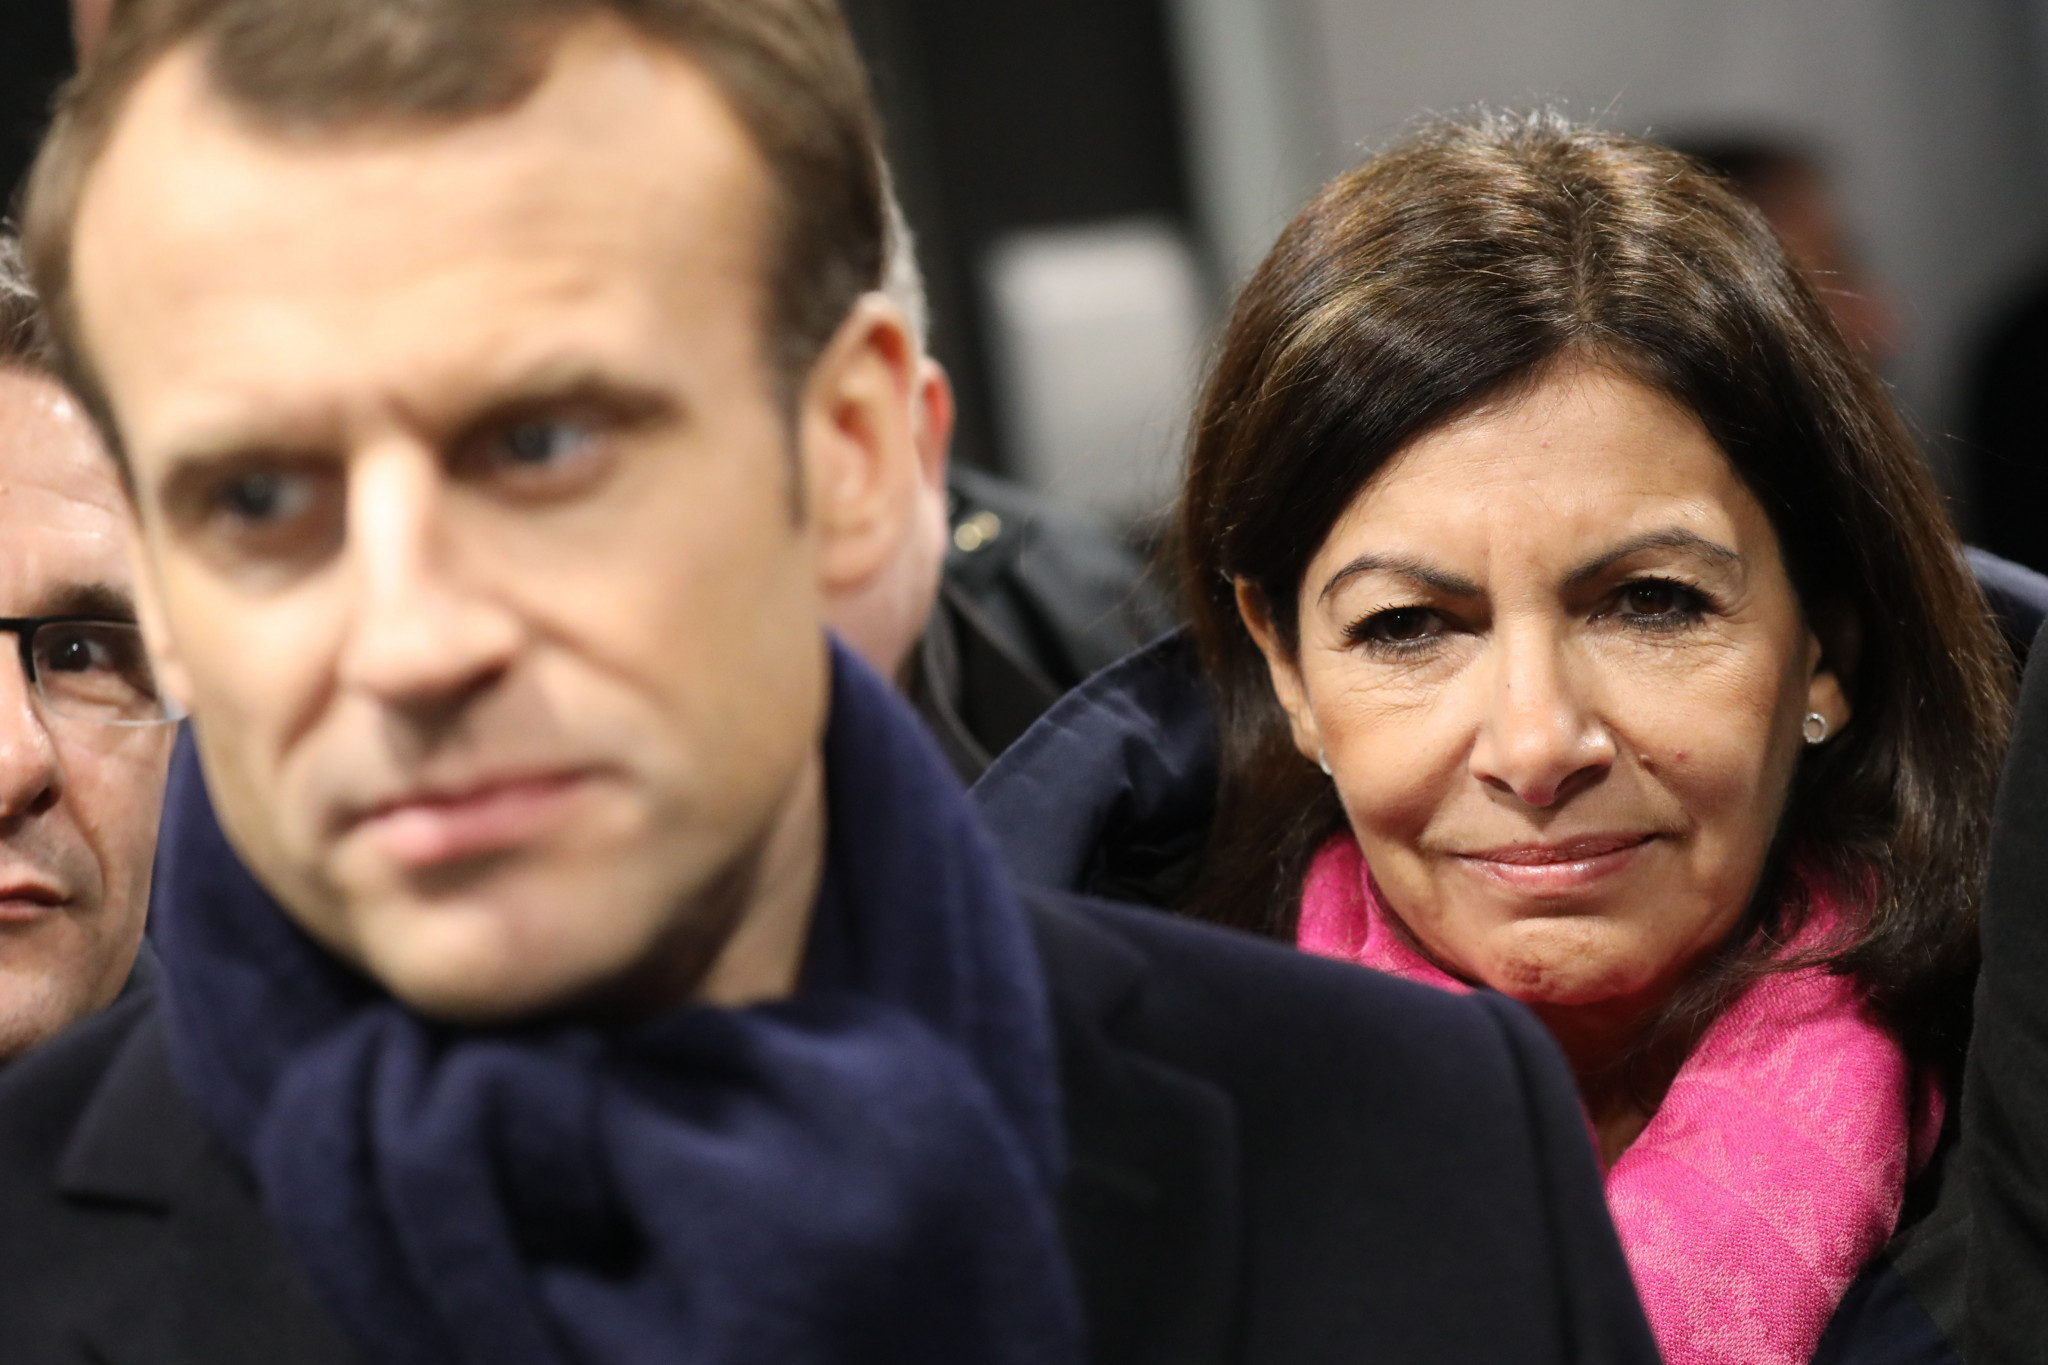 Emmanuel Macron and Anne Hidalgo are involved in a skirmish over Paris 2024 sponsorship money ©Getty Images